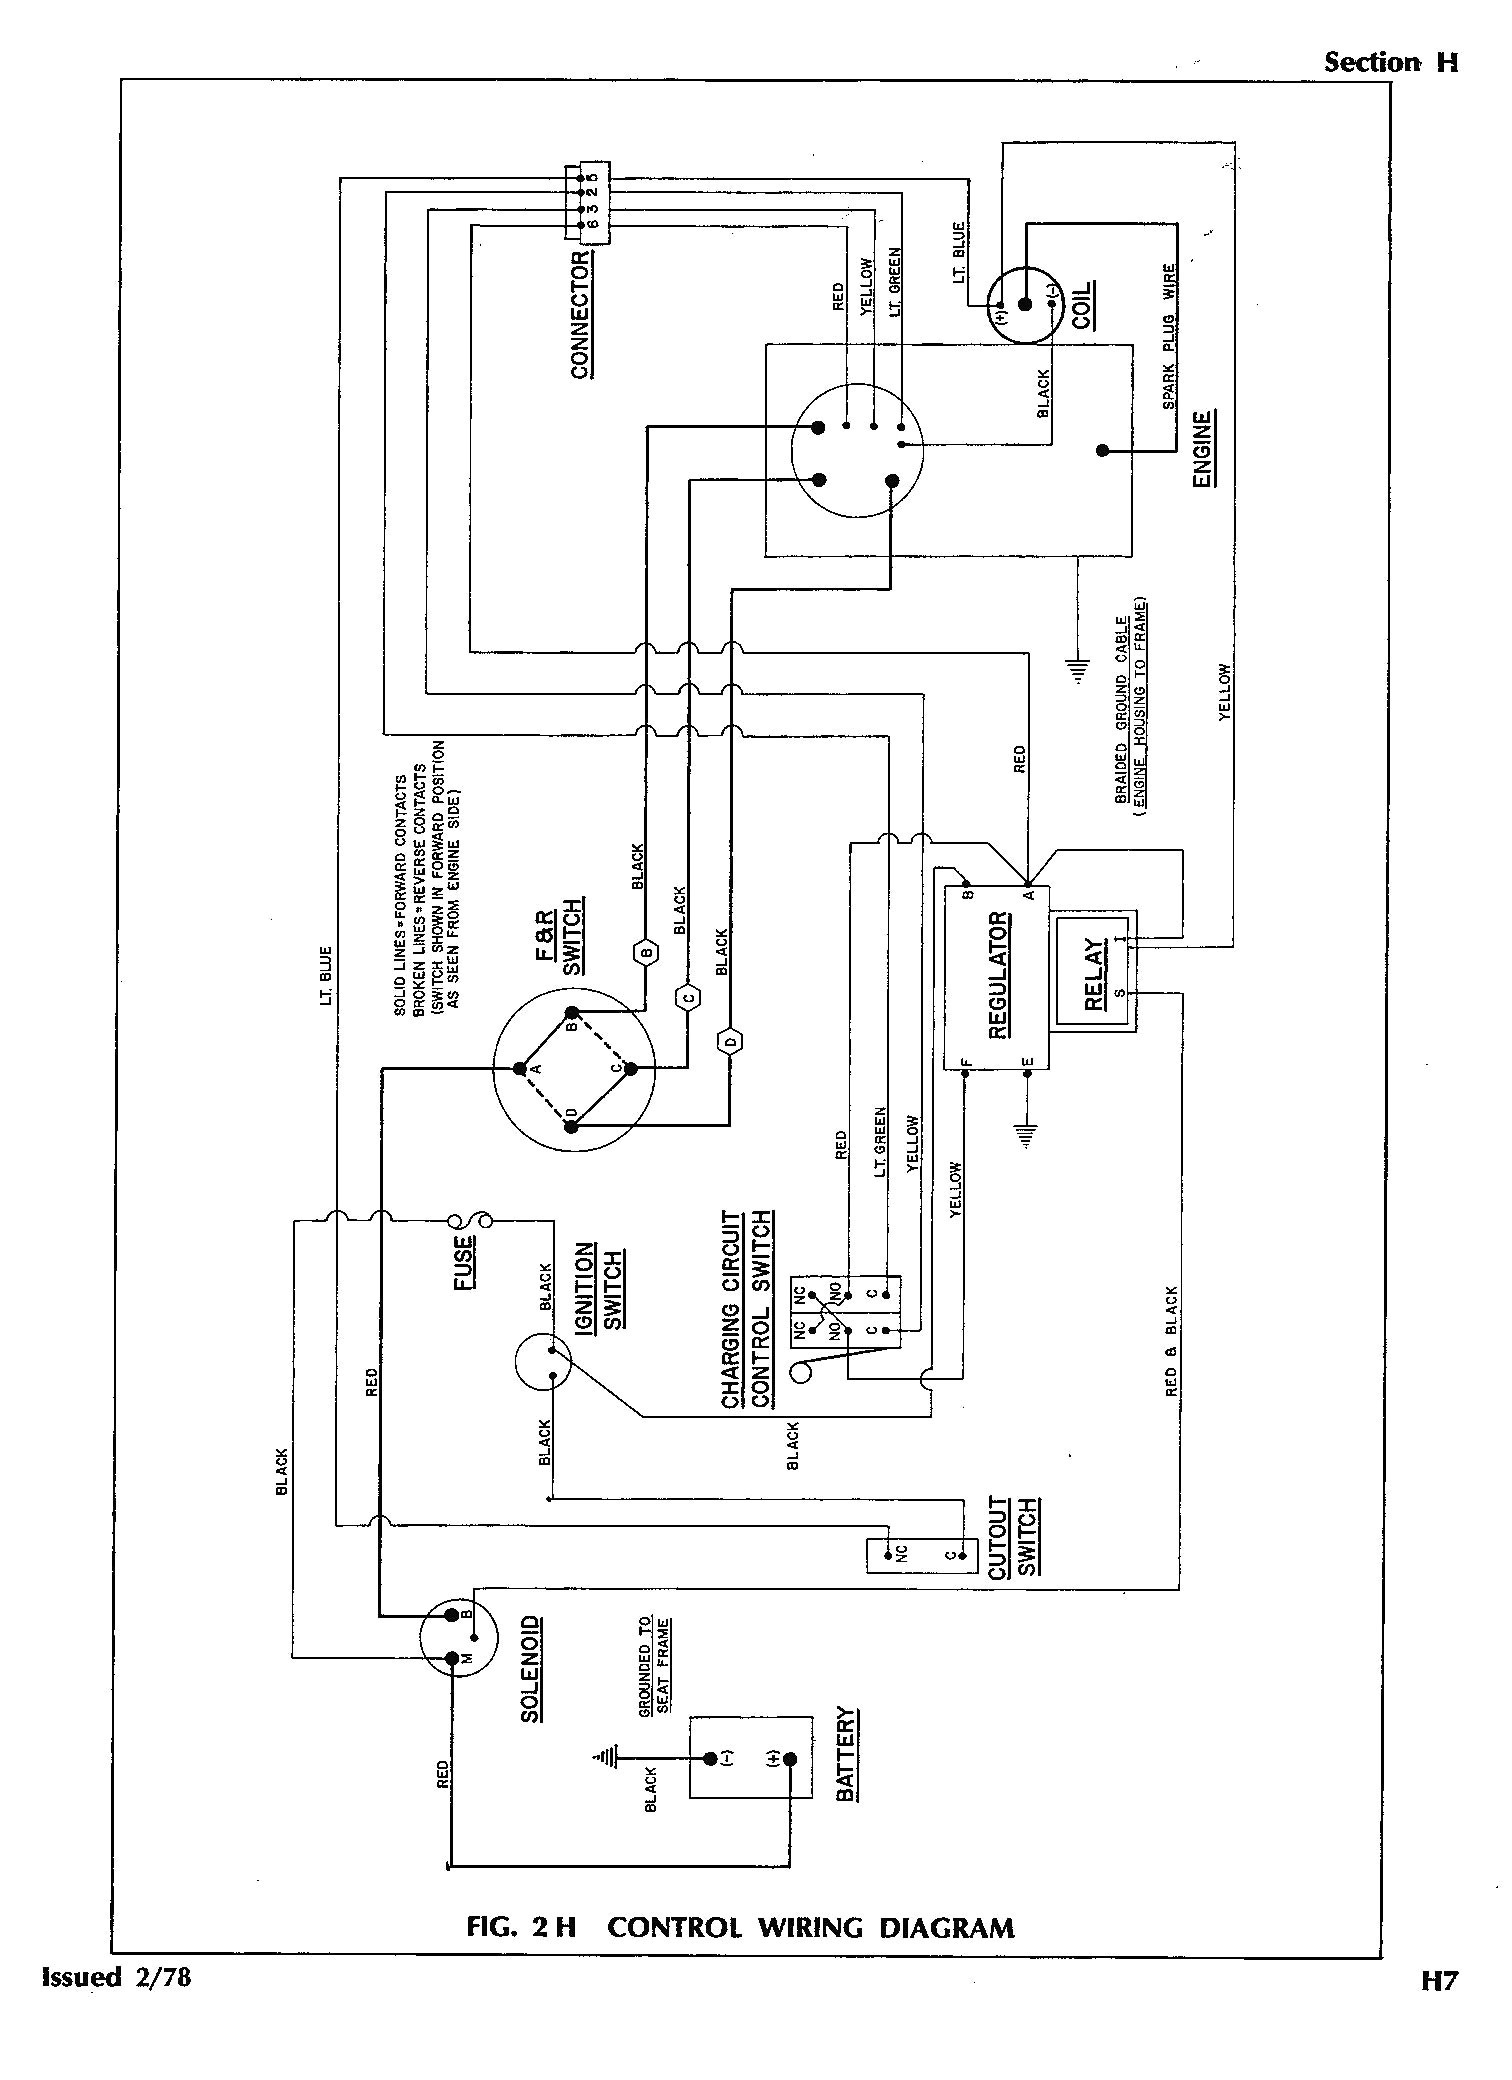 Diagram Also Wind Turbine Wiring On Ezgo | Wiring Diagram - Wind Turbine Wiring Diagram